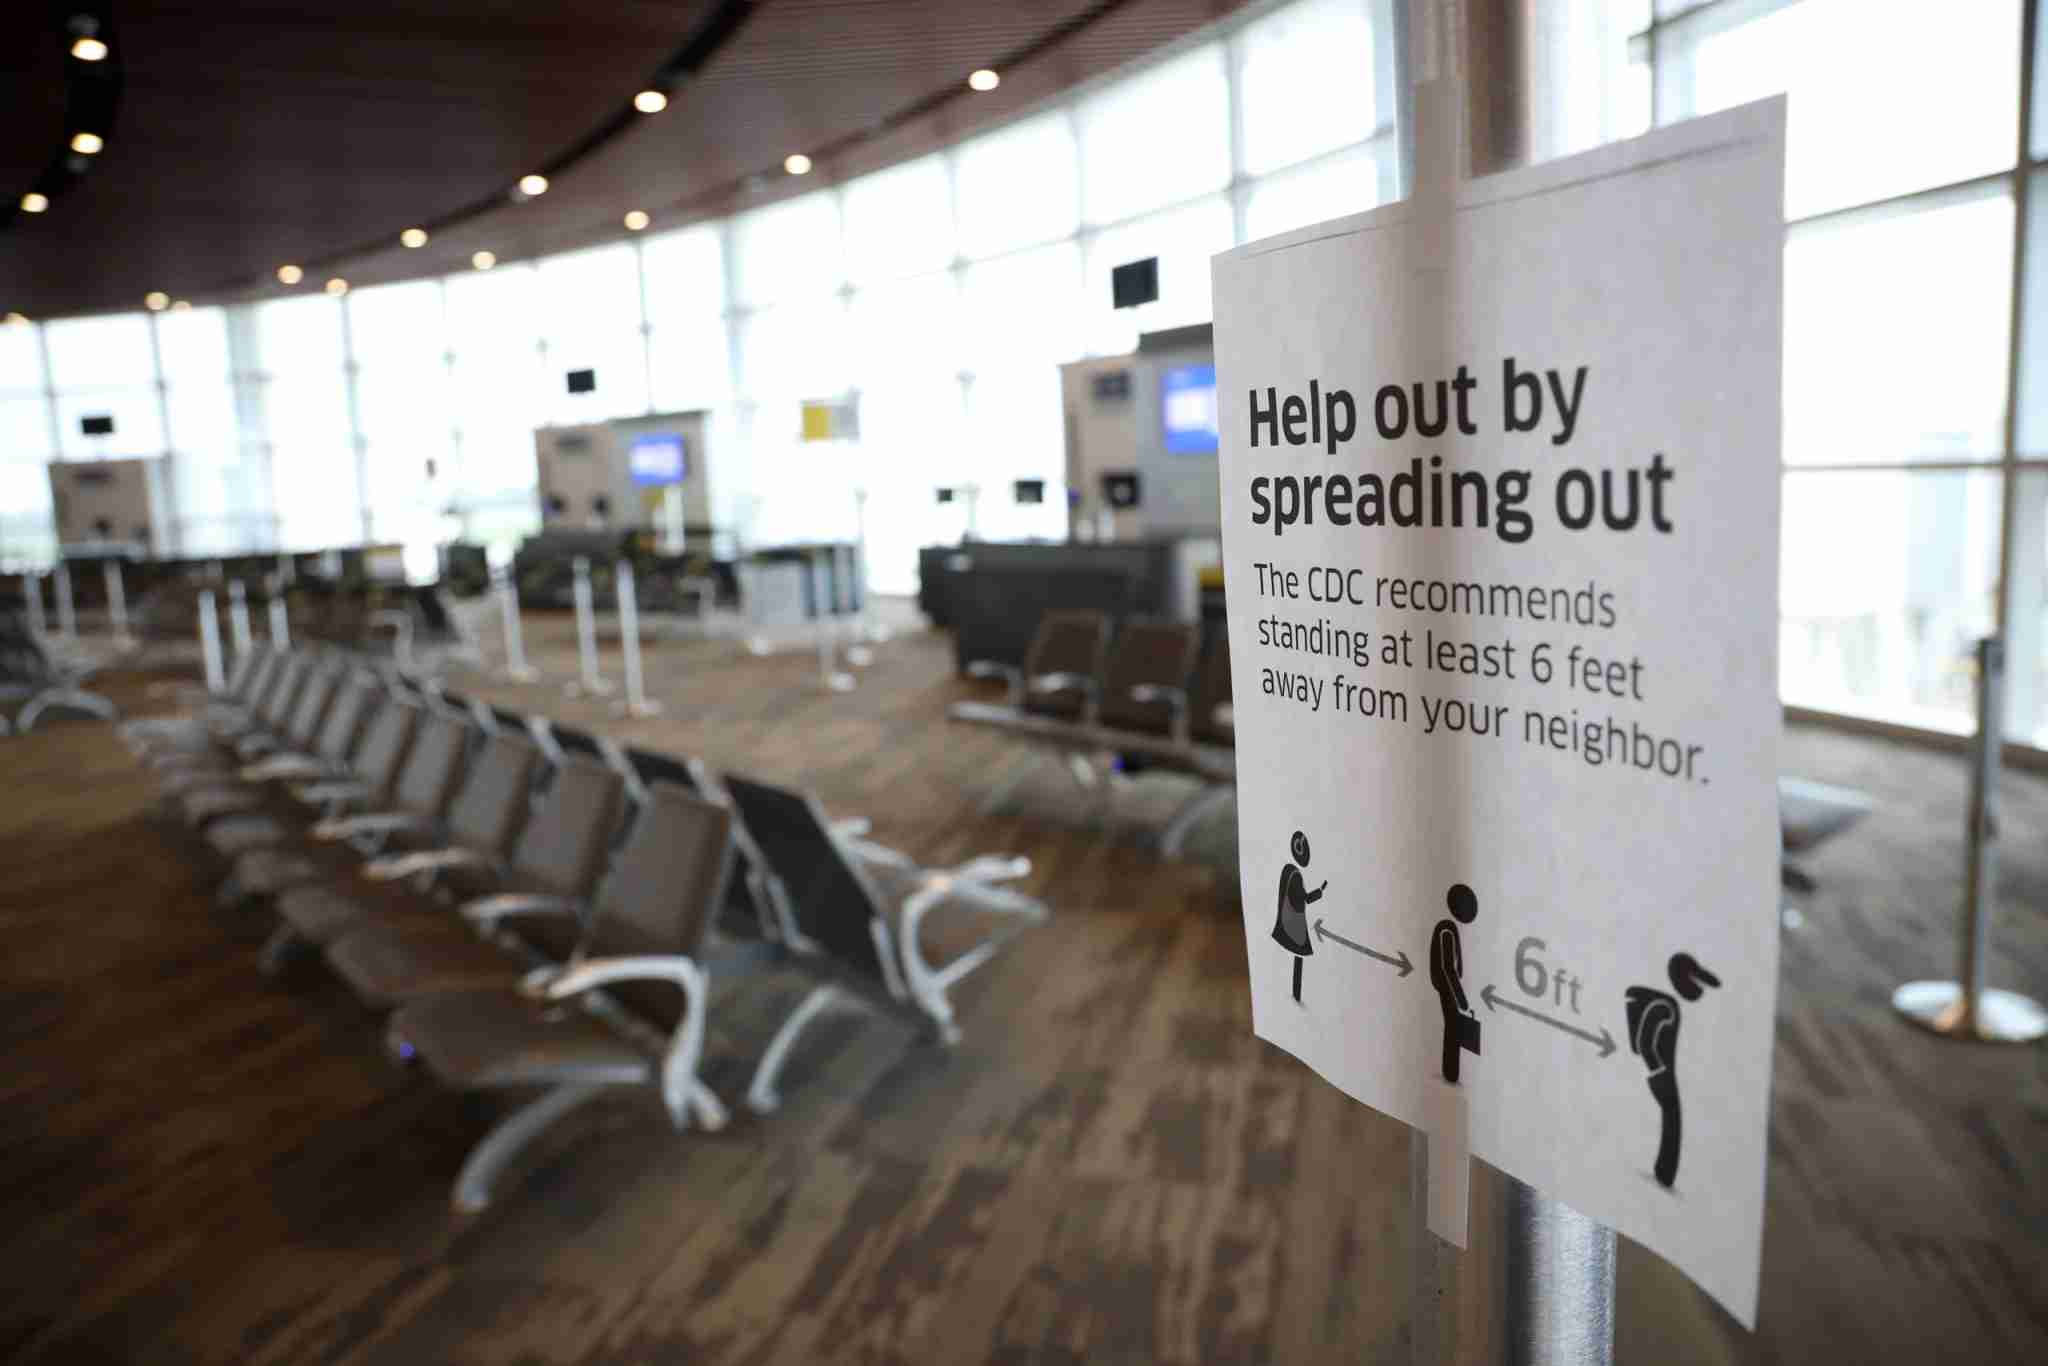 NEW ORLEANS, LA - MAY 15: Empty boarding areas are seen at Louis Armstrong International Airport on May 15, 2020 in New Orleans, Louisiana. Air travel is down an estimated 94 percent due to the coronavirus (COVID-19) pandemic and major U.S. airlines are taking a major financial hit with losses of $350 million to $400 million a day and nearly half of major carriers airplanes are sitting idle. (Photo by Chris Graythen/Getty Images)